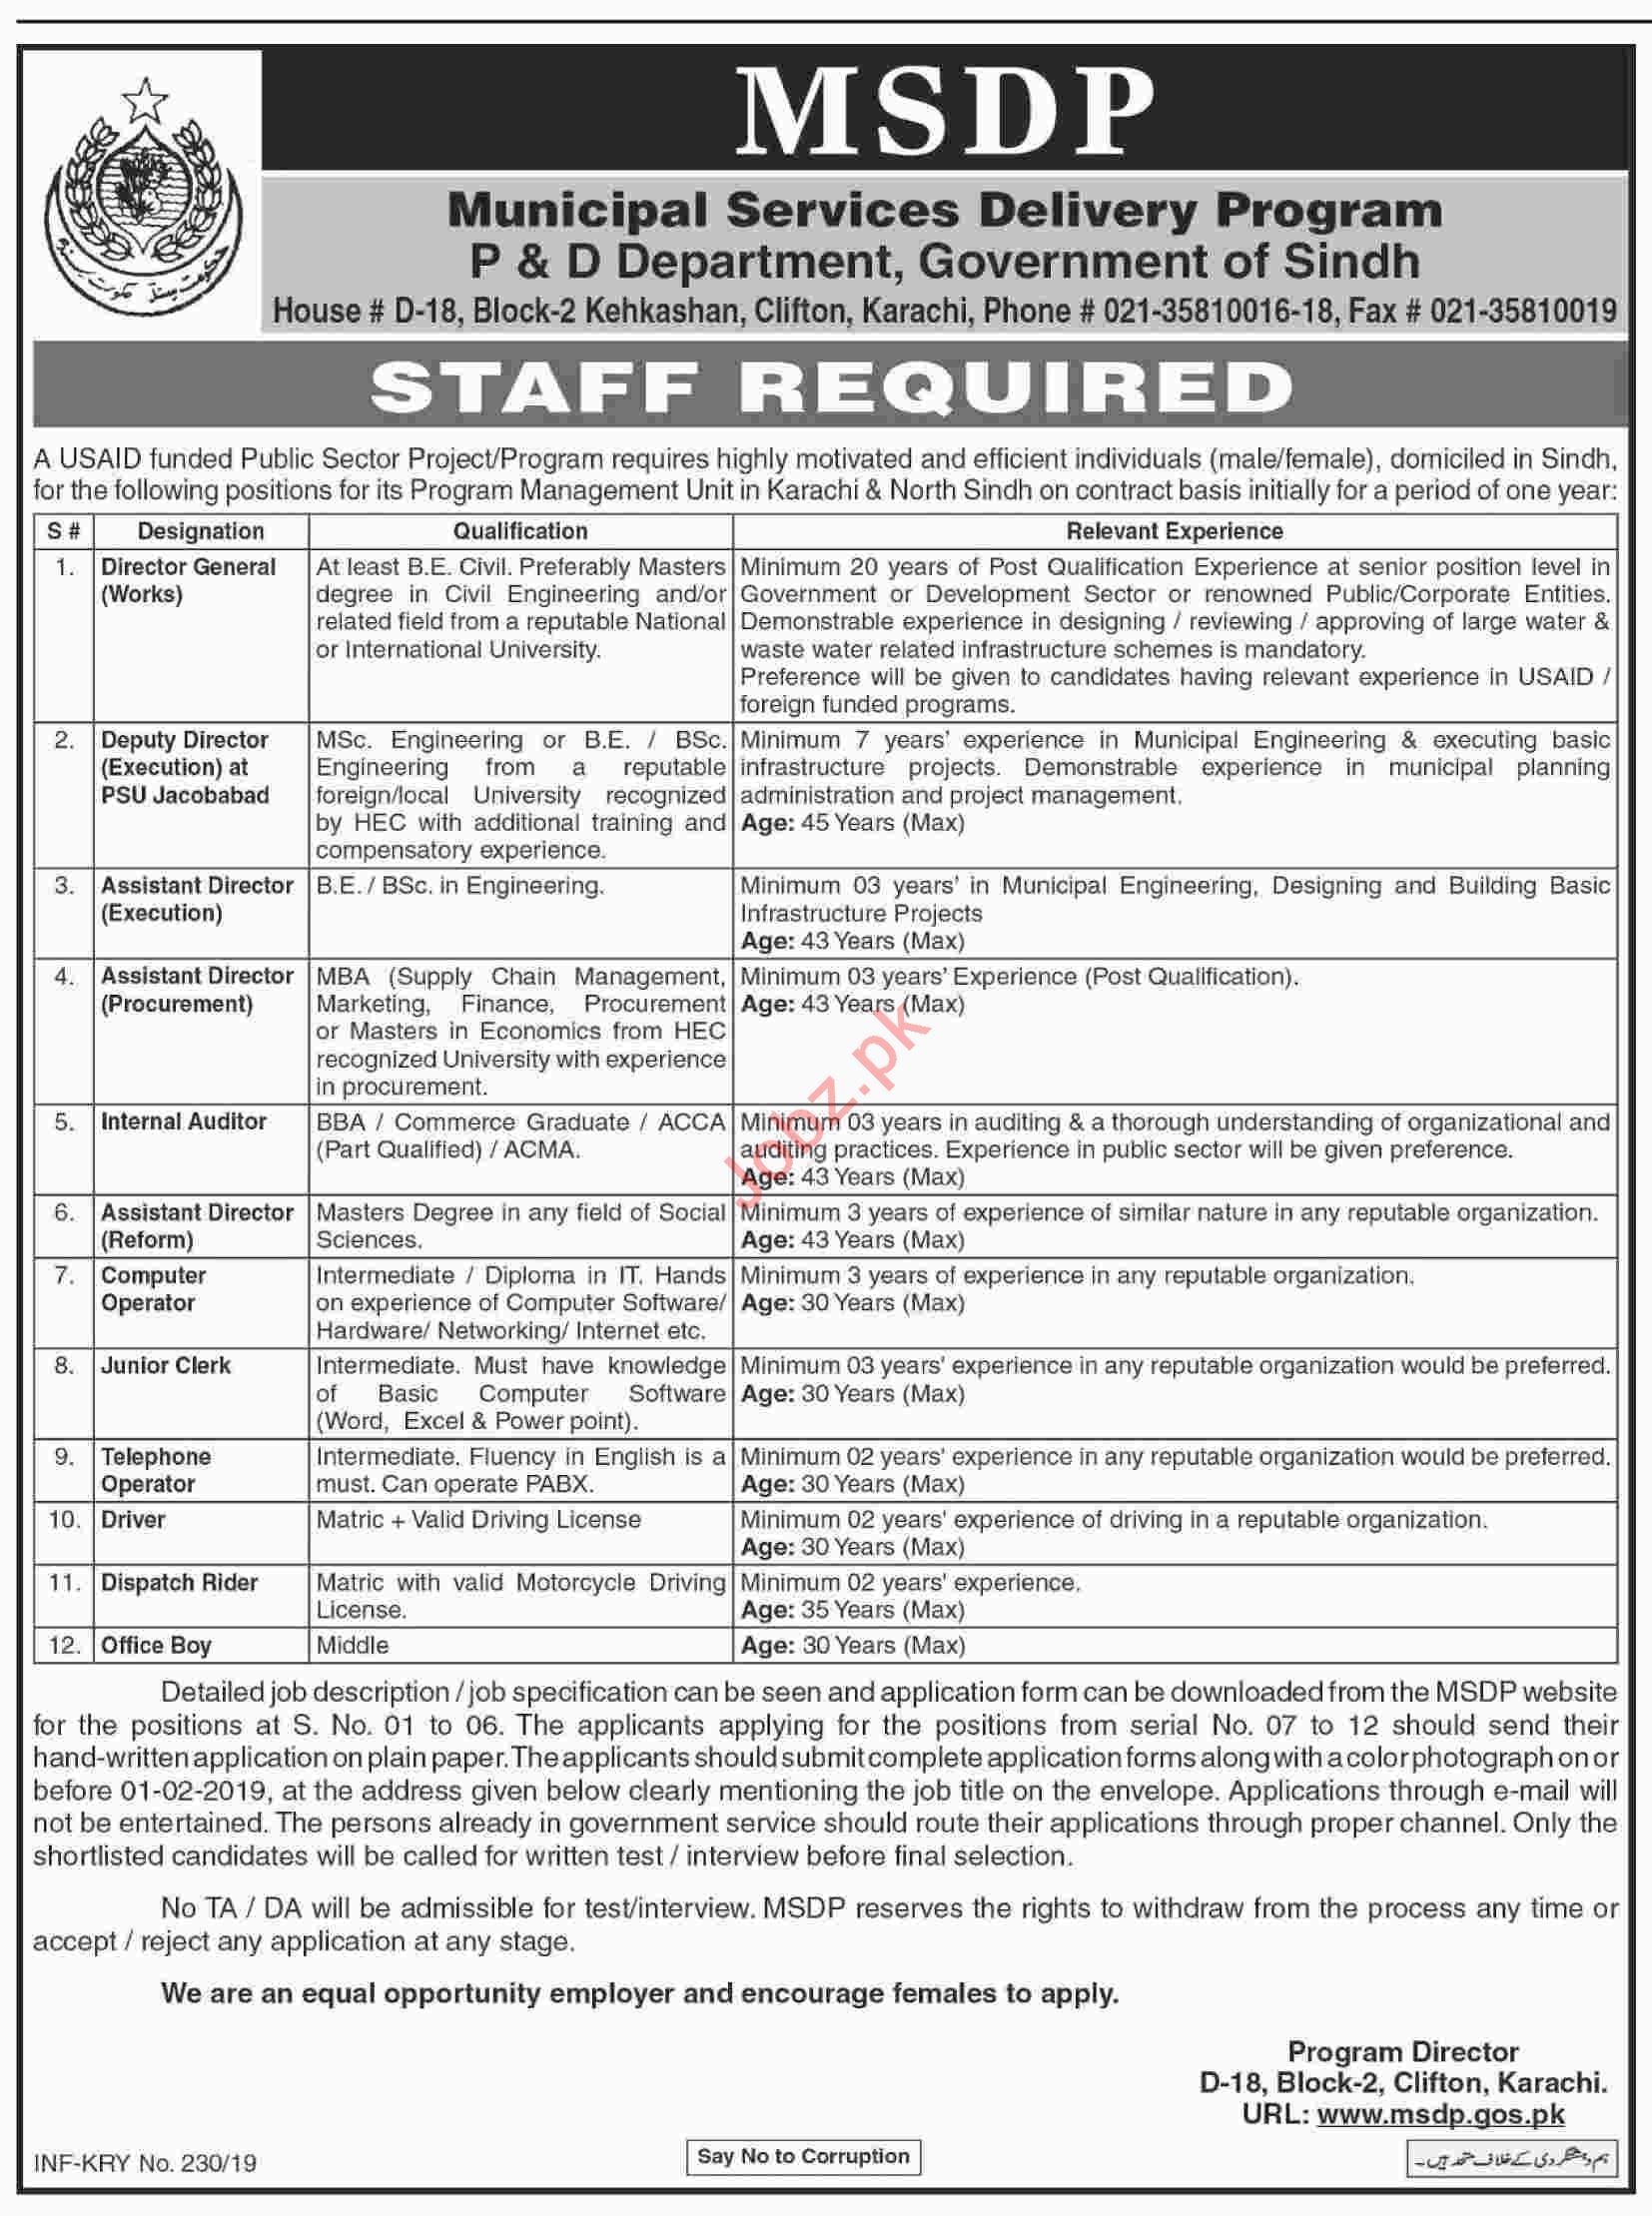 Sindh Municipal Services Delivery Program MSDP Jobs 2019